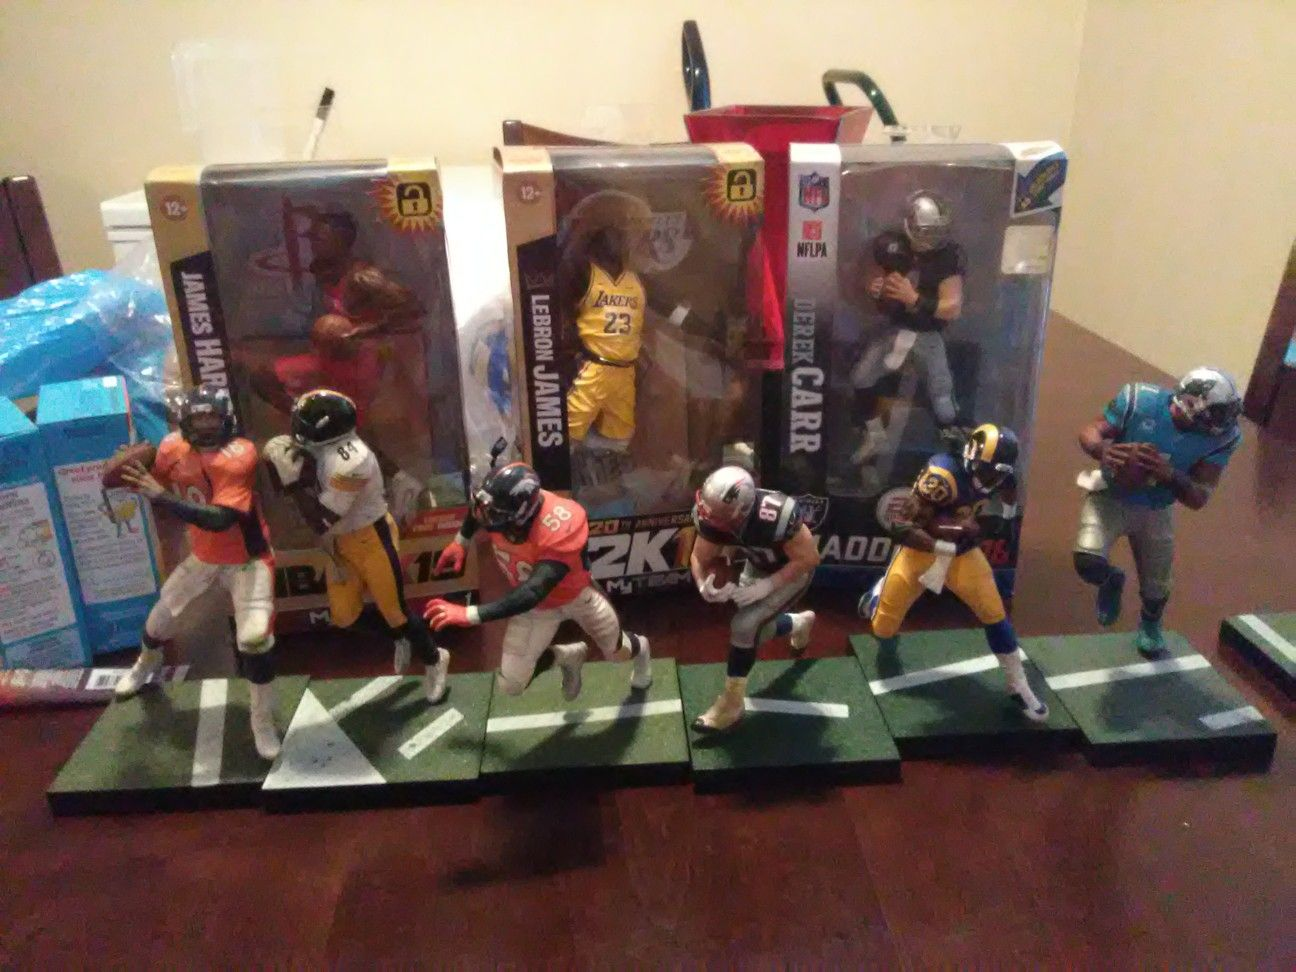 Nfl nba mlb. Action figures. Old and new players